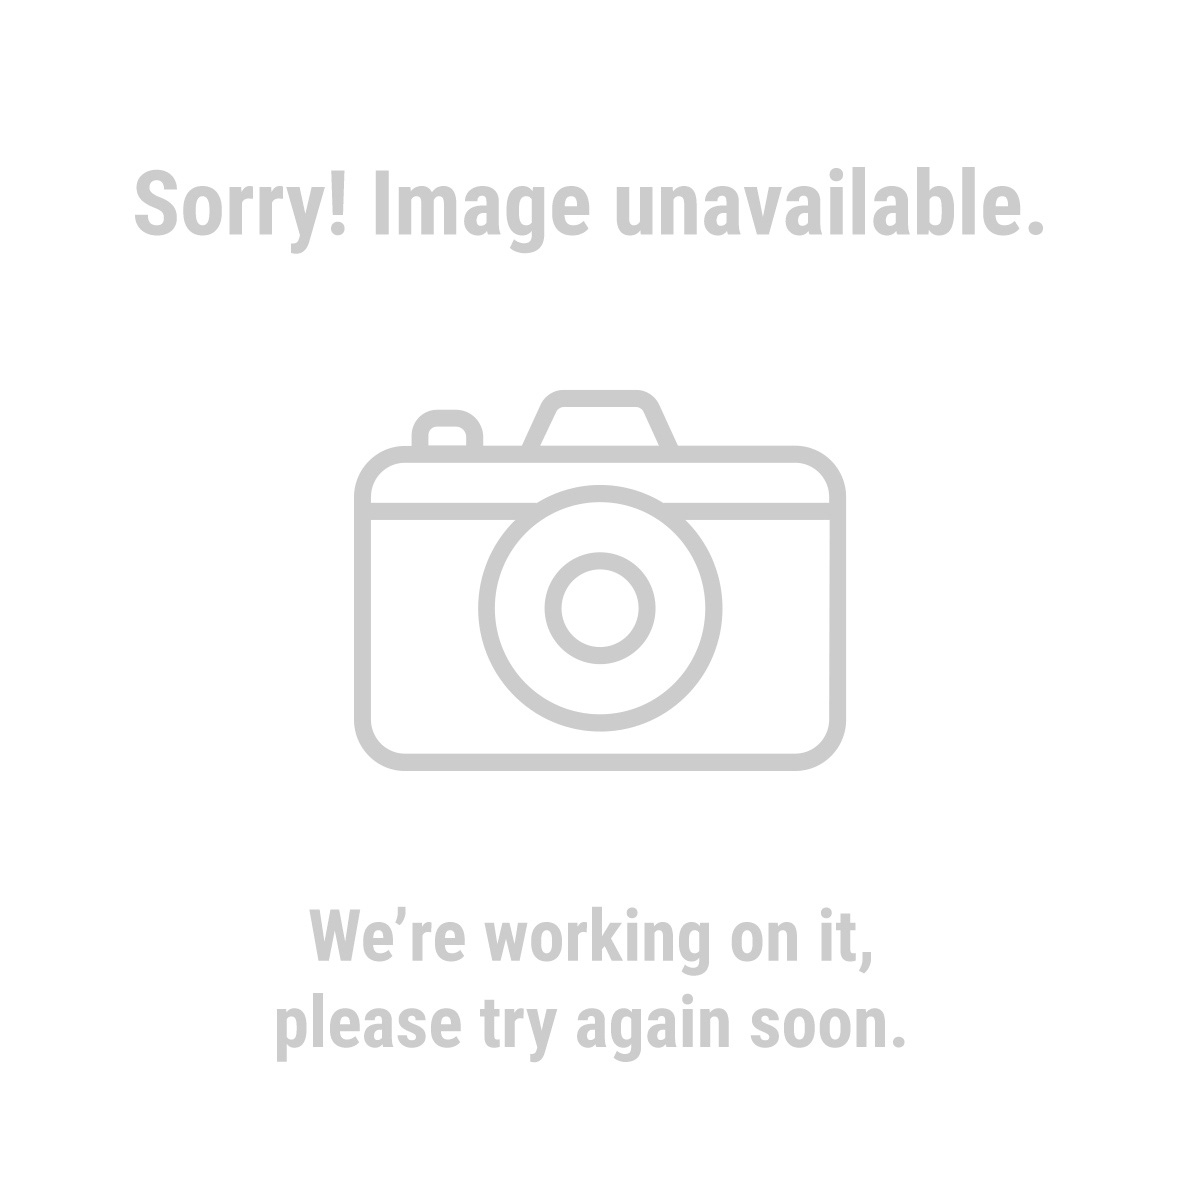 "Warrior 47569 4-1/2"" Grinding and Cut-off Wheel Assortment for Metal and Masonry - Pack of 10"